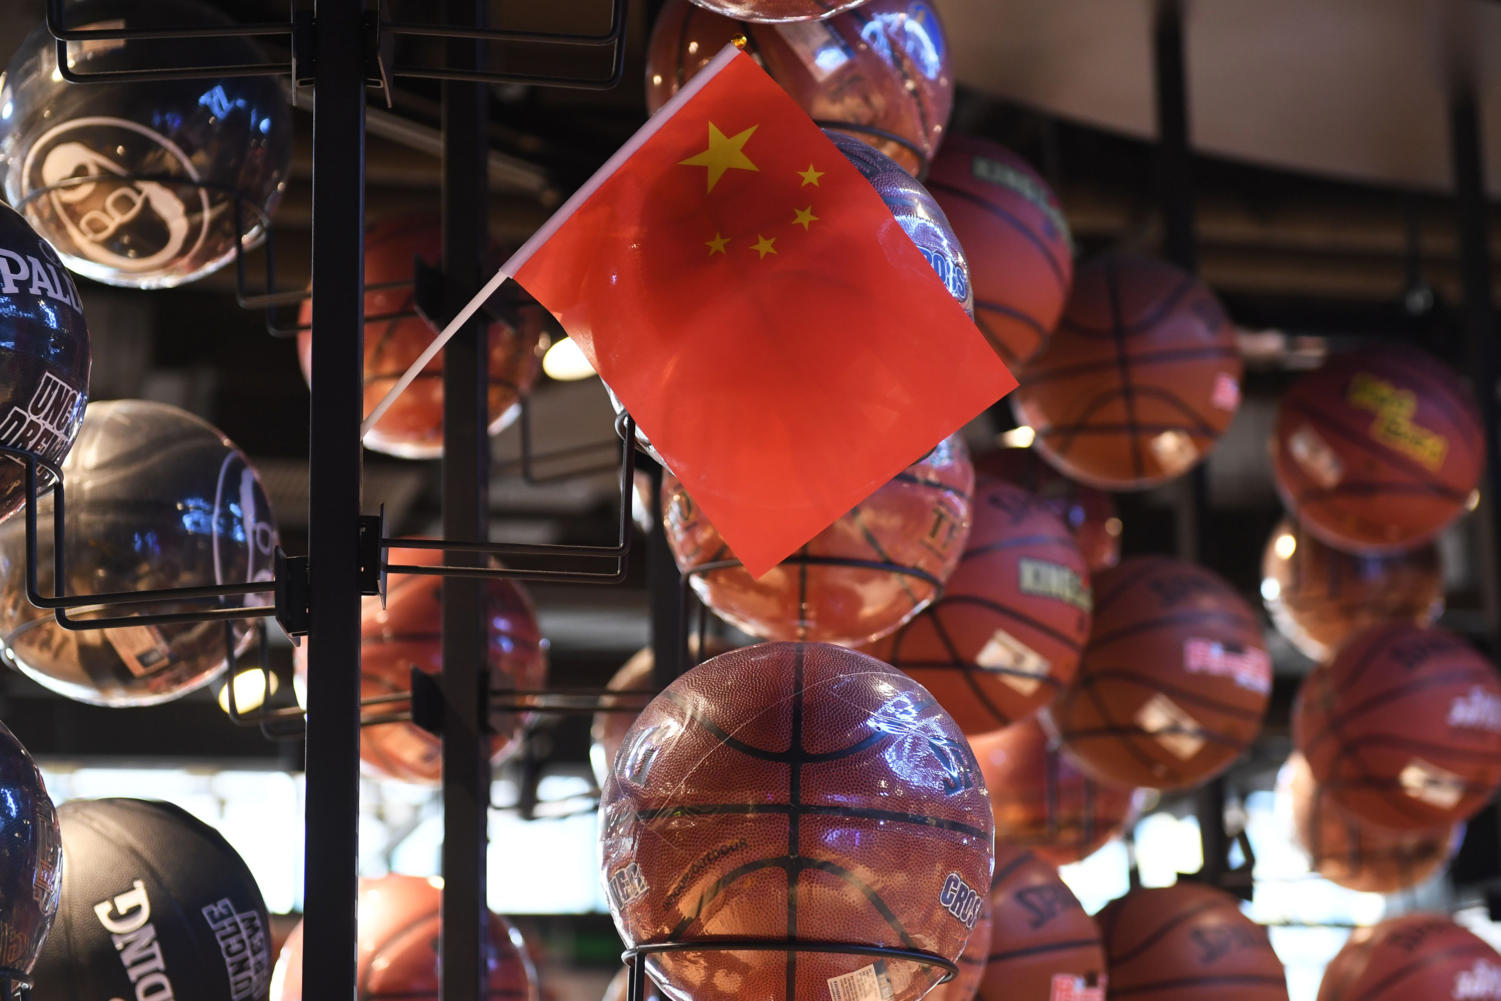 The Chinese flag is seen with a display of basketballs at the NBA store in Beijing on Oct. 9.